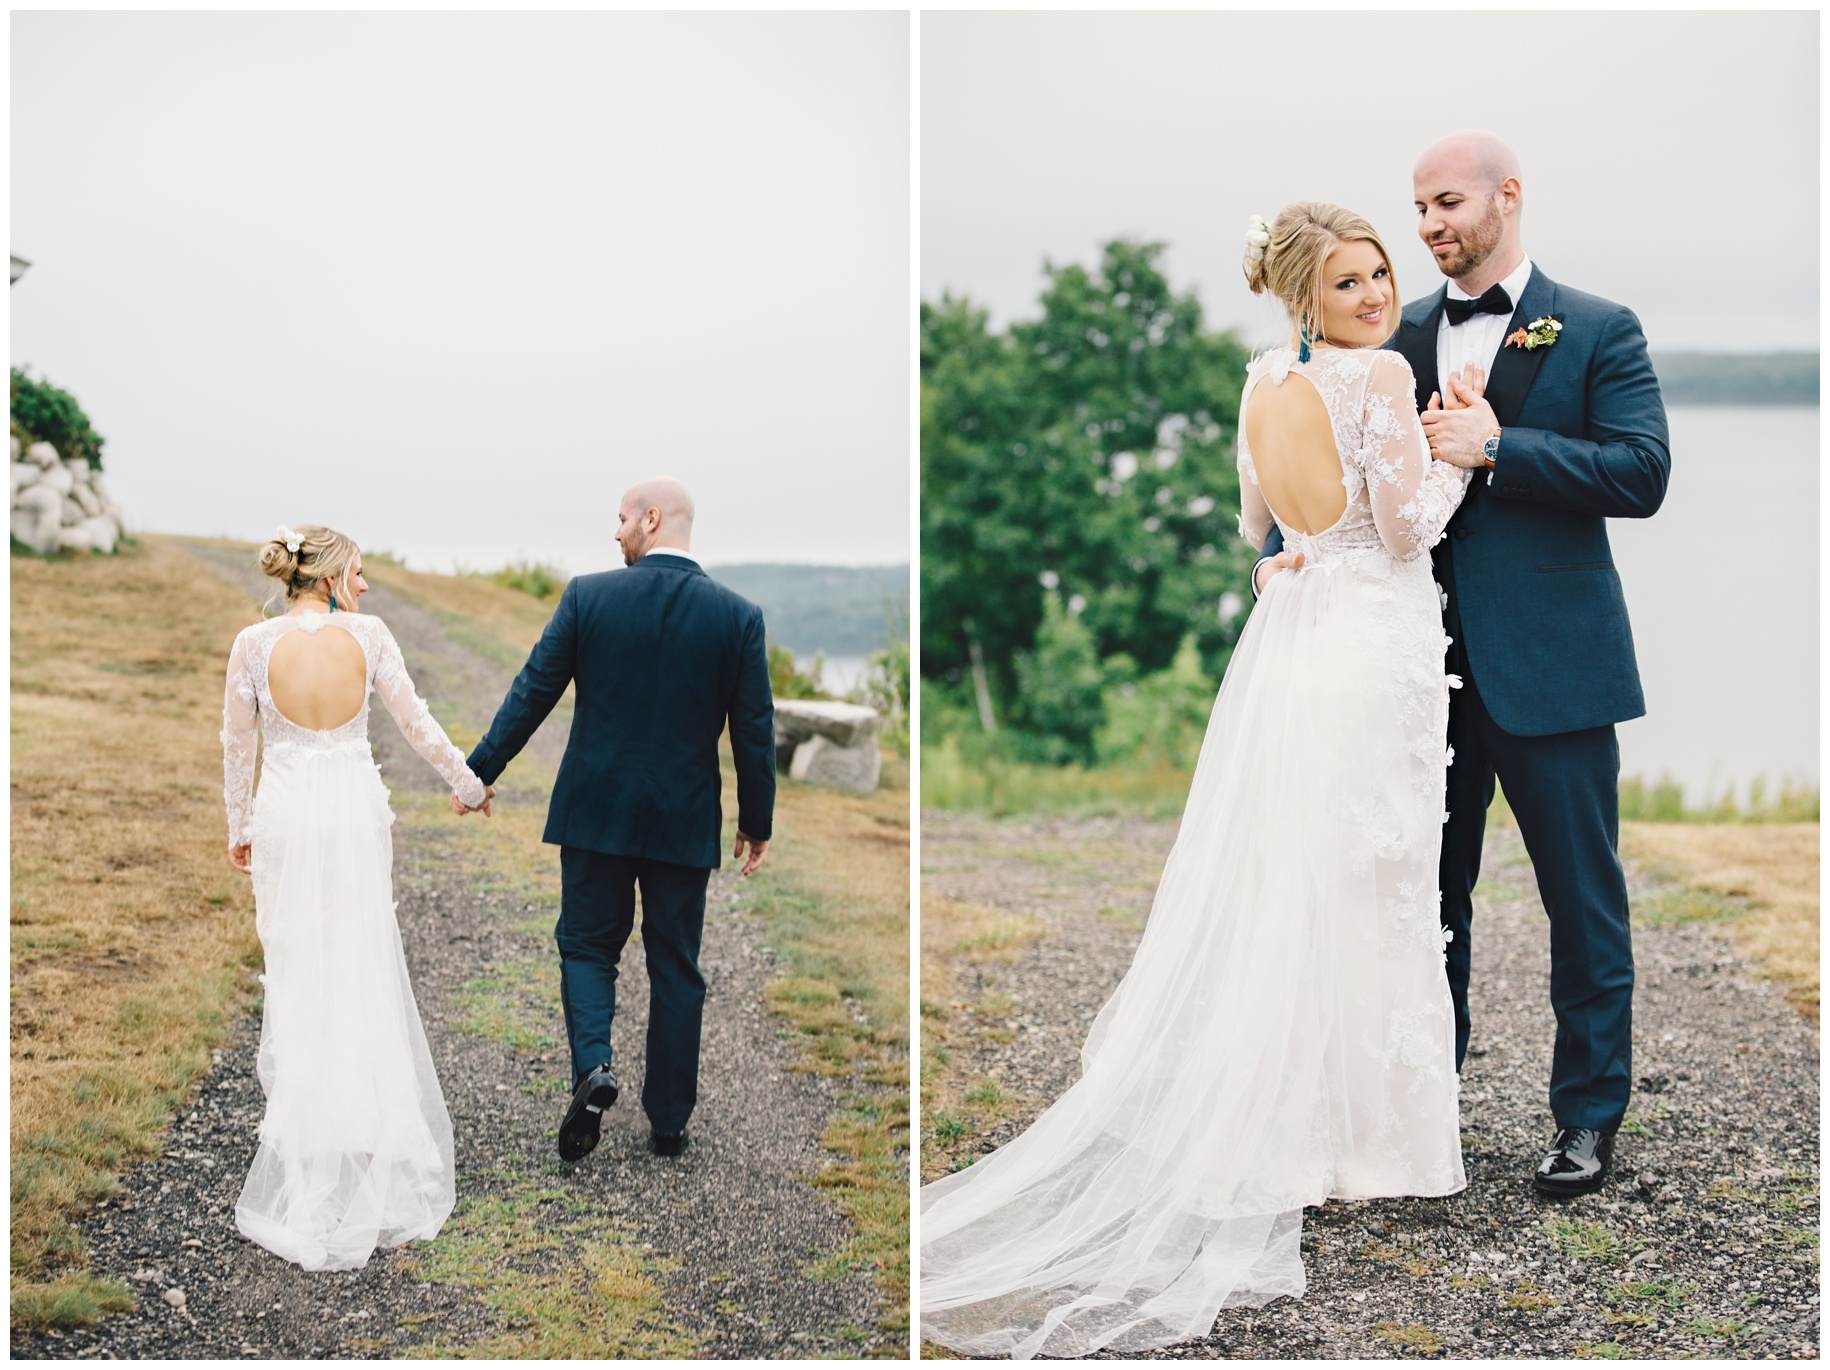 maineweddingphotographer_frenchspoint_stocktonsprings-089